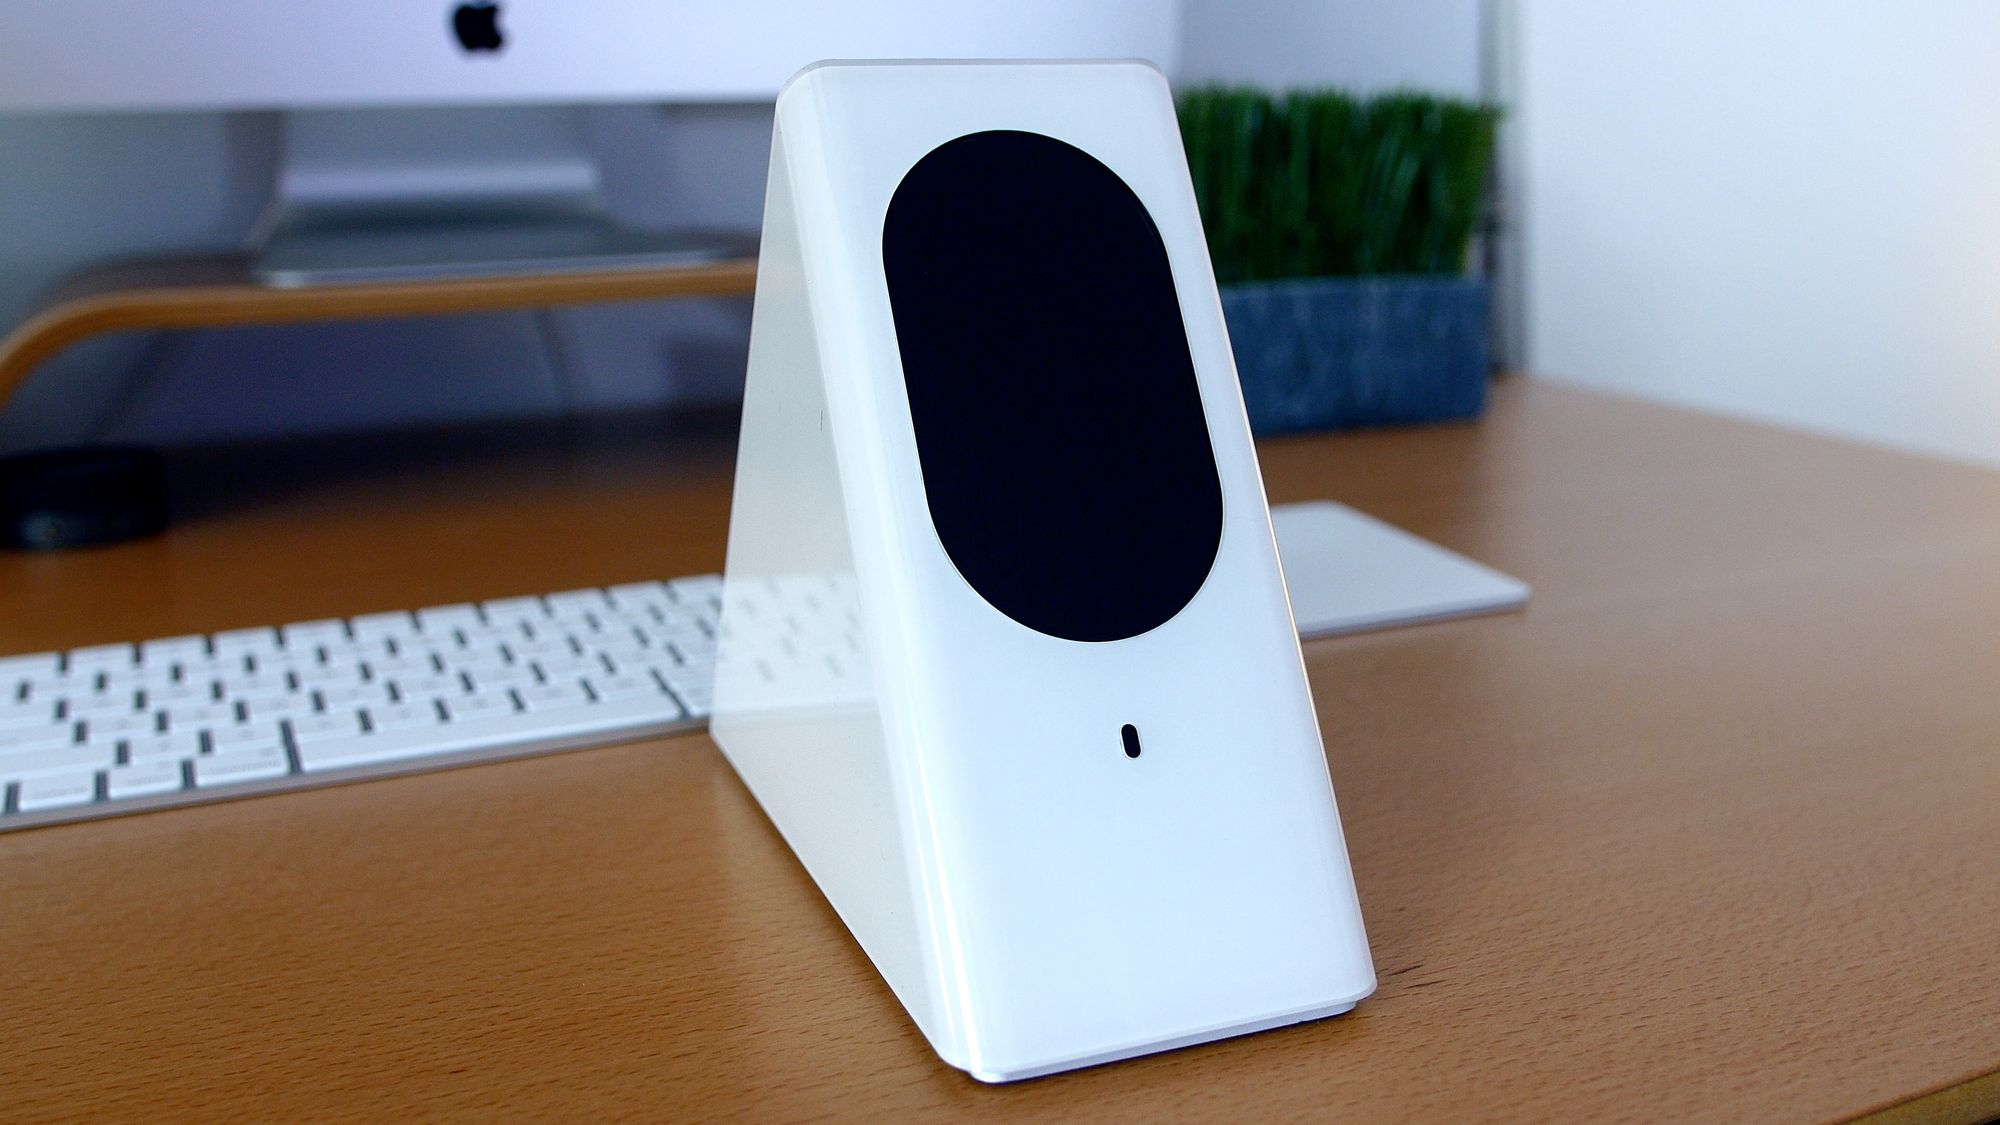 Starry Station Review - Coolest Smart Home WiFi Router?!